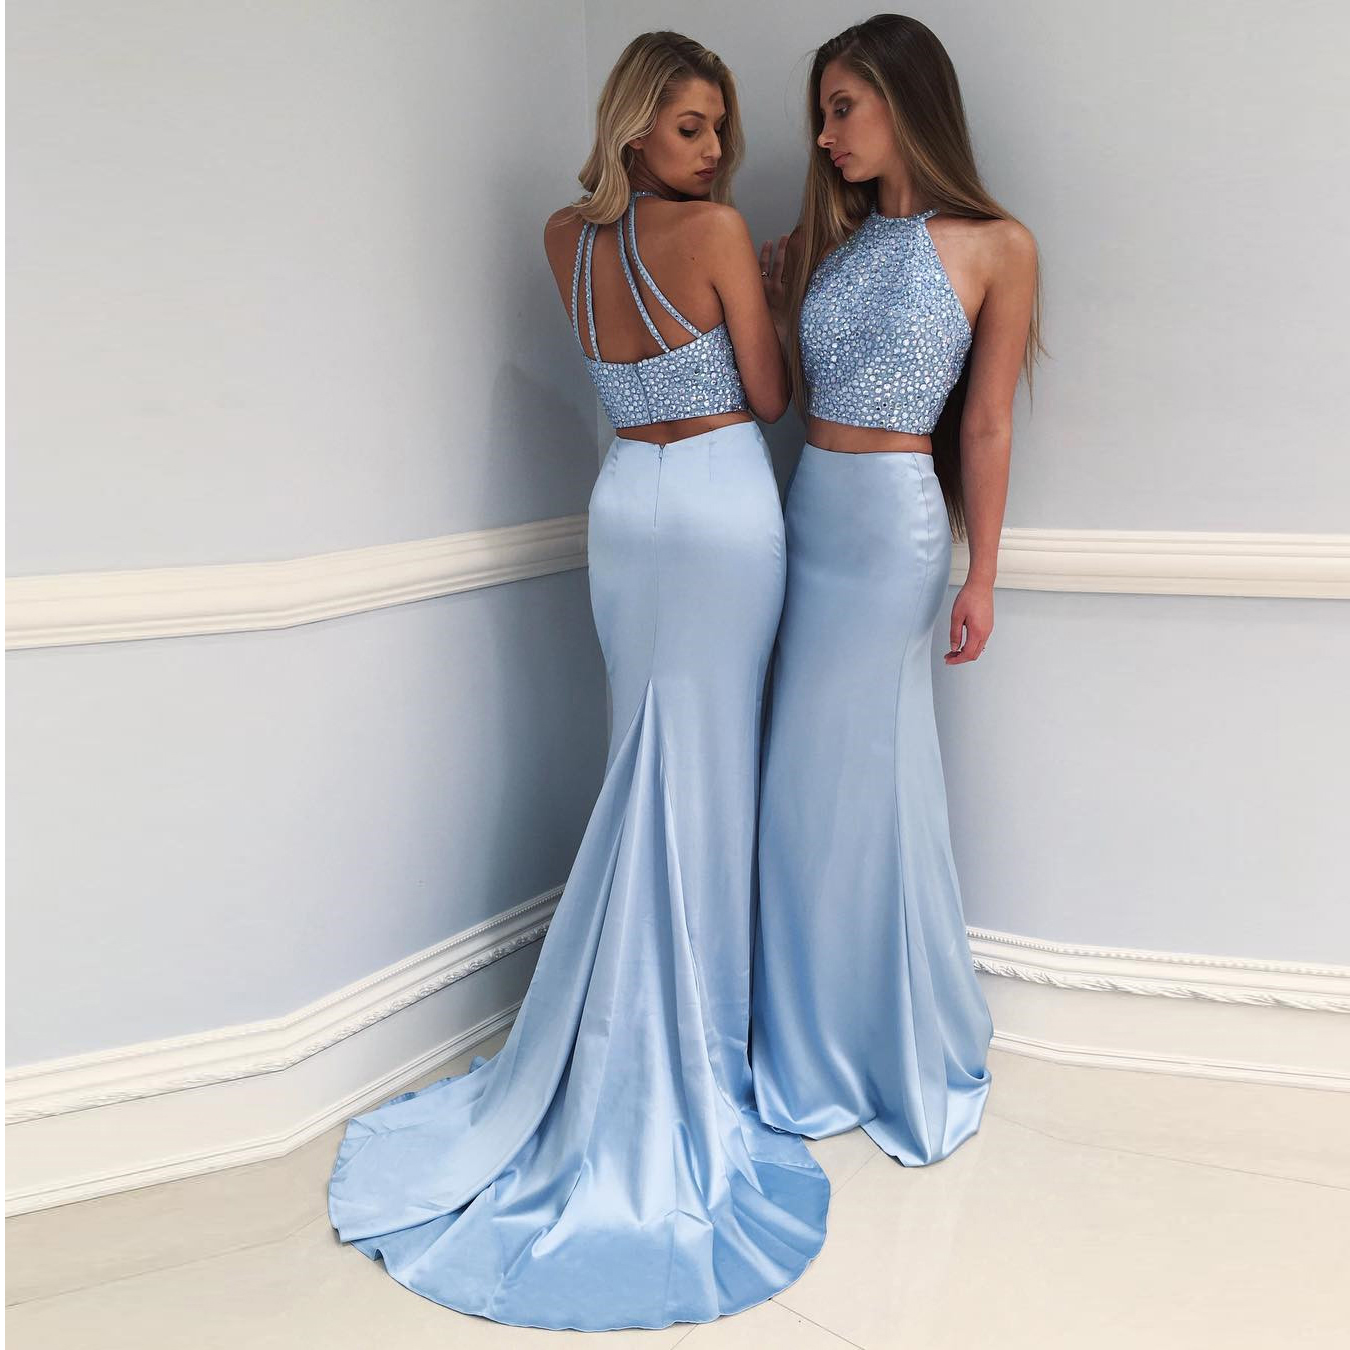 054c0911c8952 Two 20piece 20prom 20dress 20light 20blue 2c 20beaded 20halter 20mermaid  20formal 20evening 20gown original